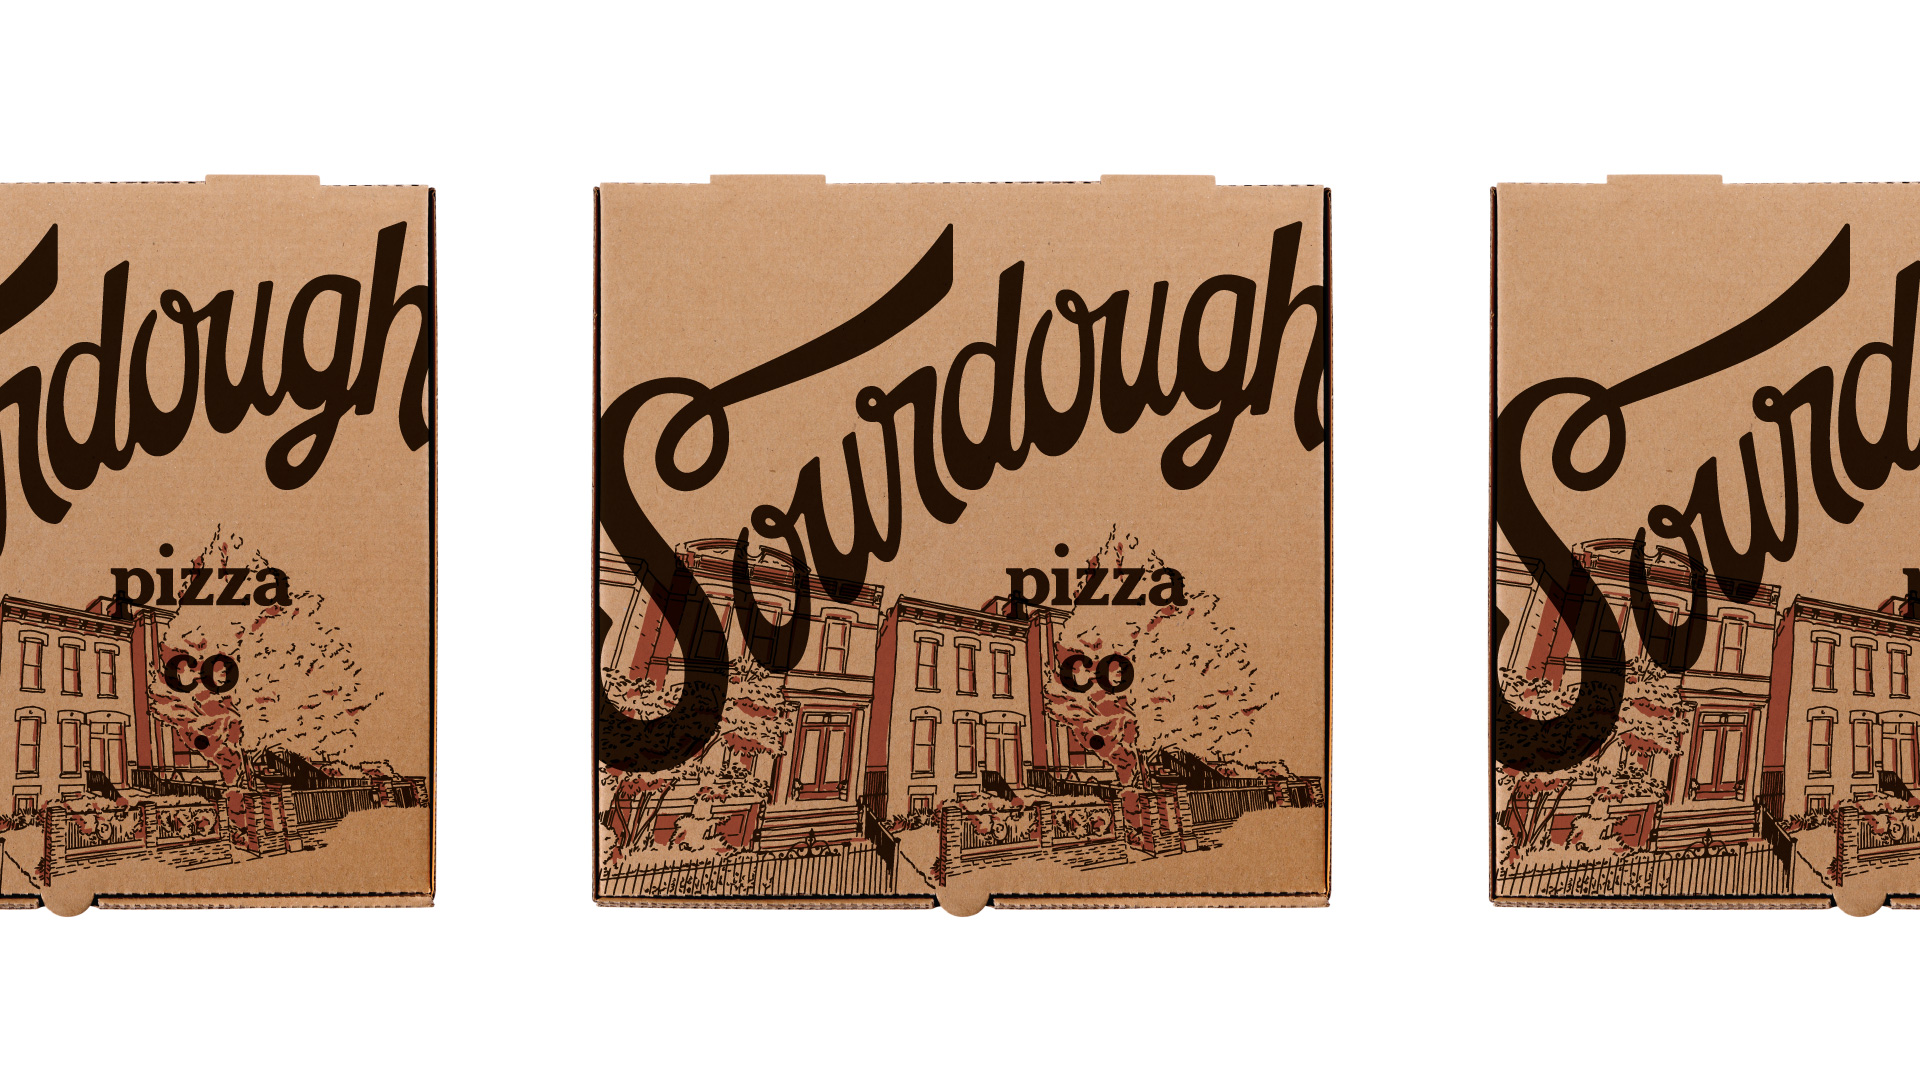 pizza box for chicago pizza brand